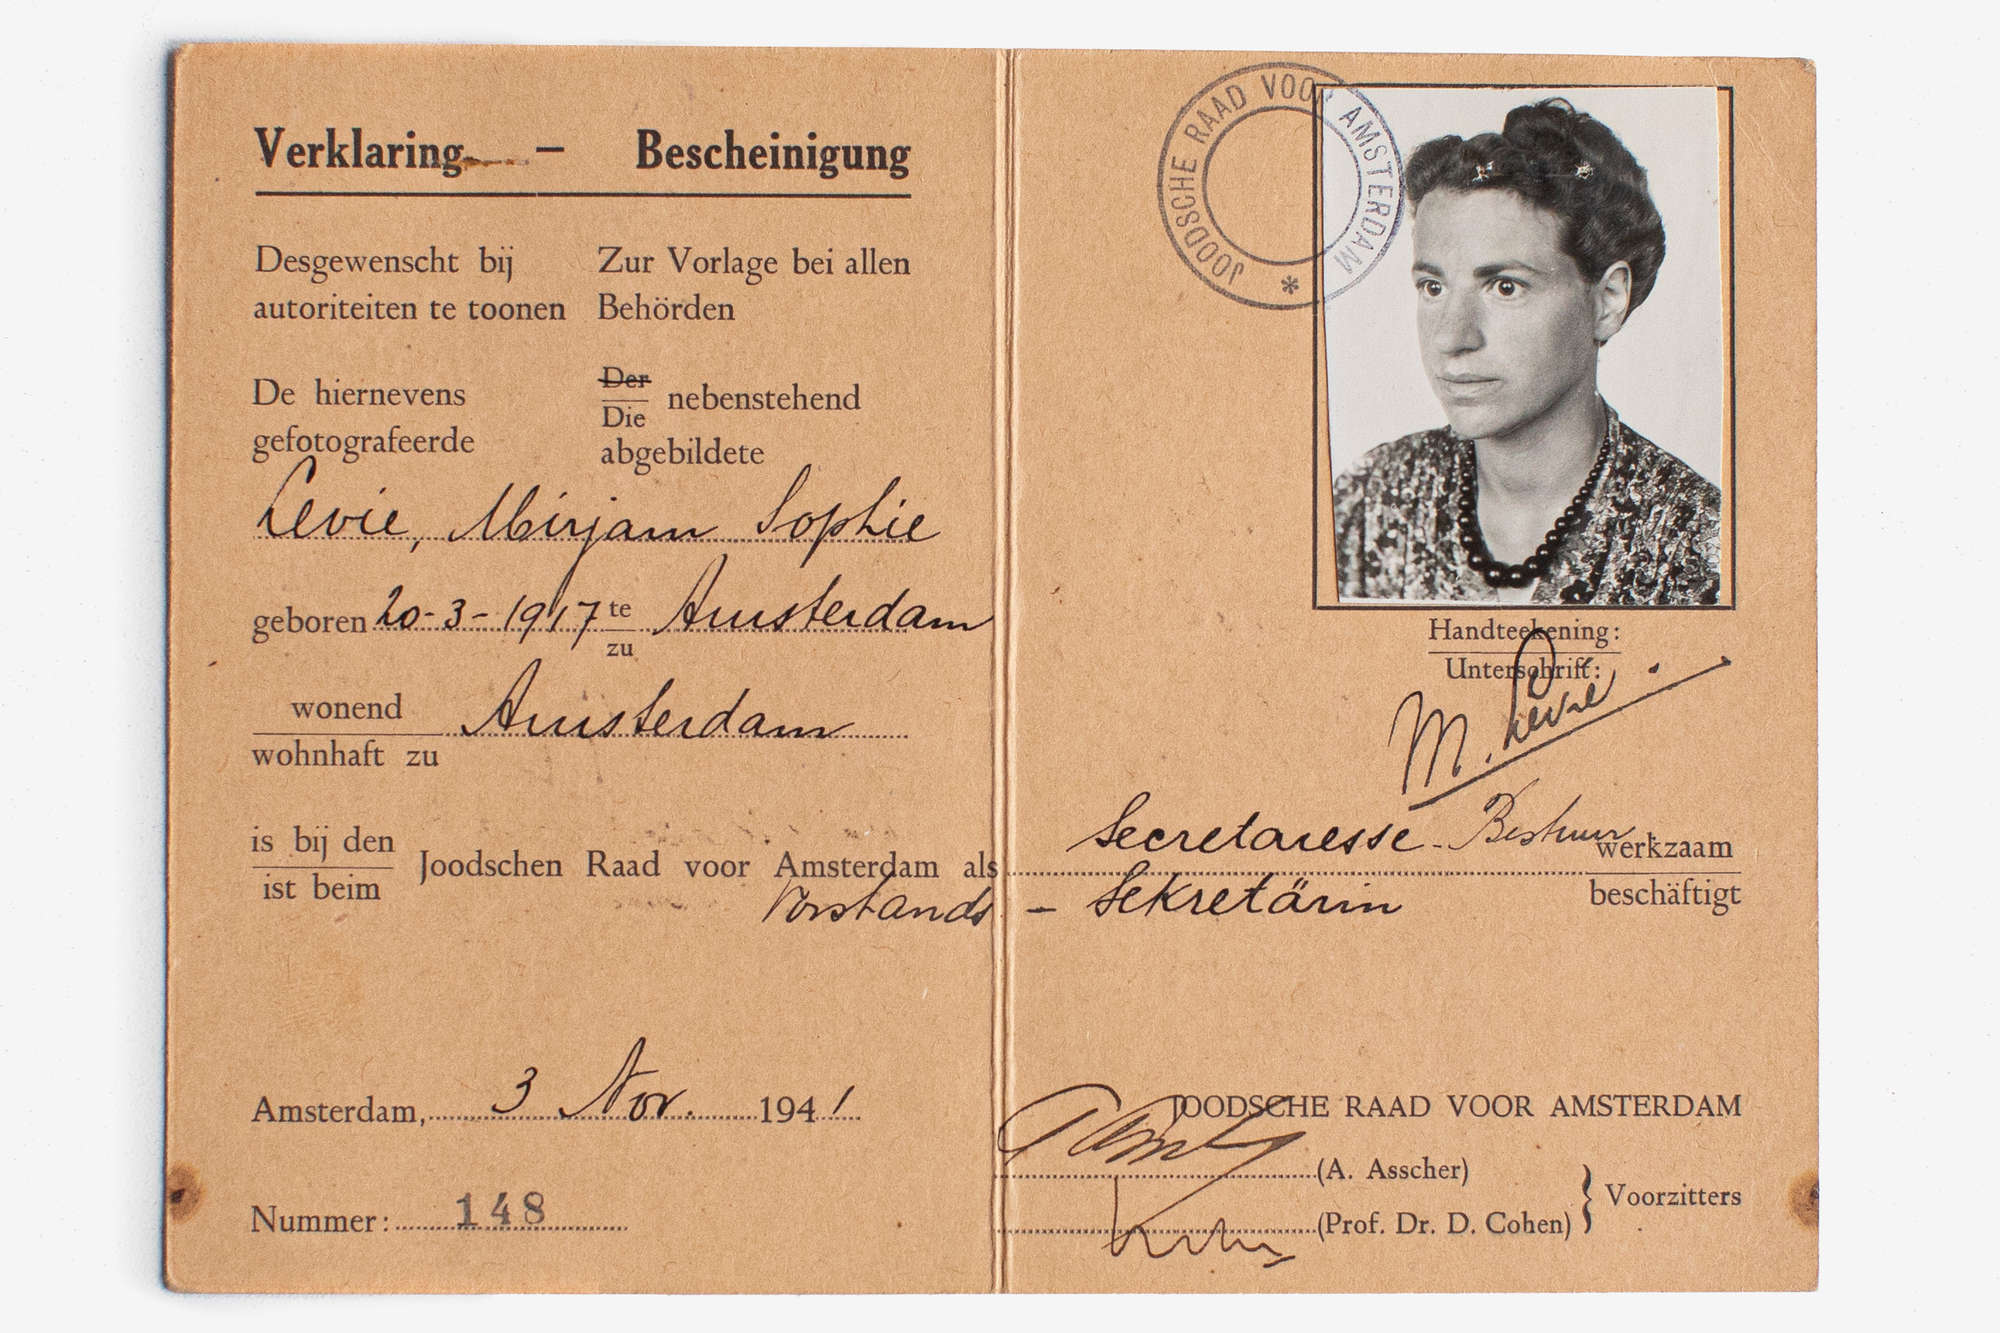 An identity card issued to Mirjam Bolle under her maiden name Mirjam Levie in November 1941